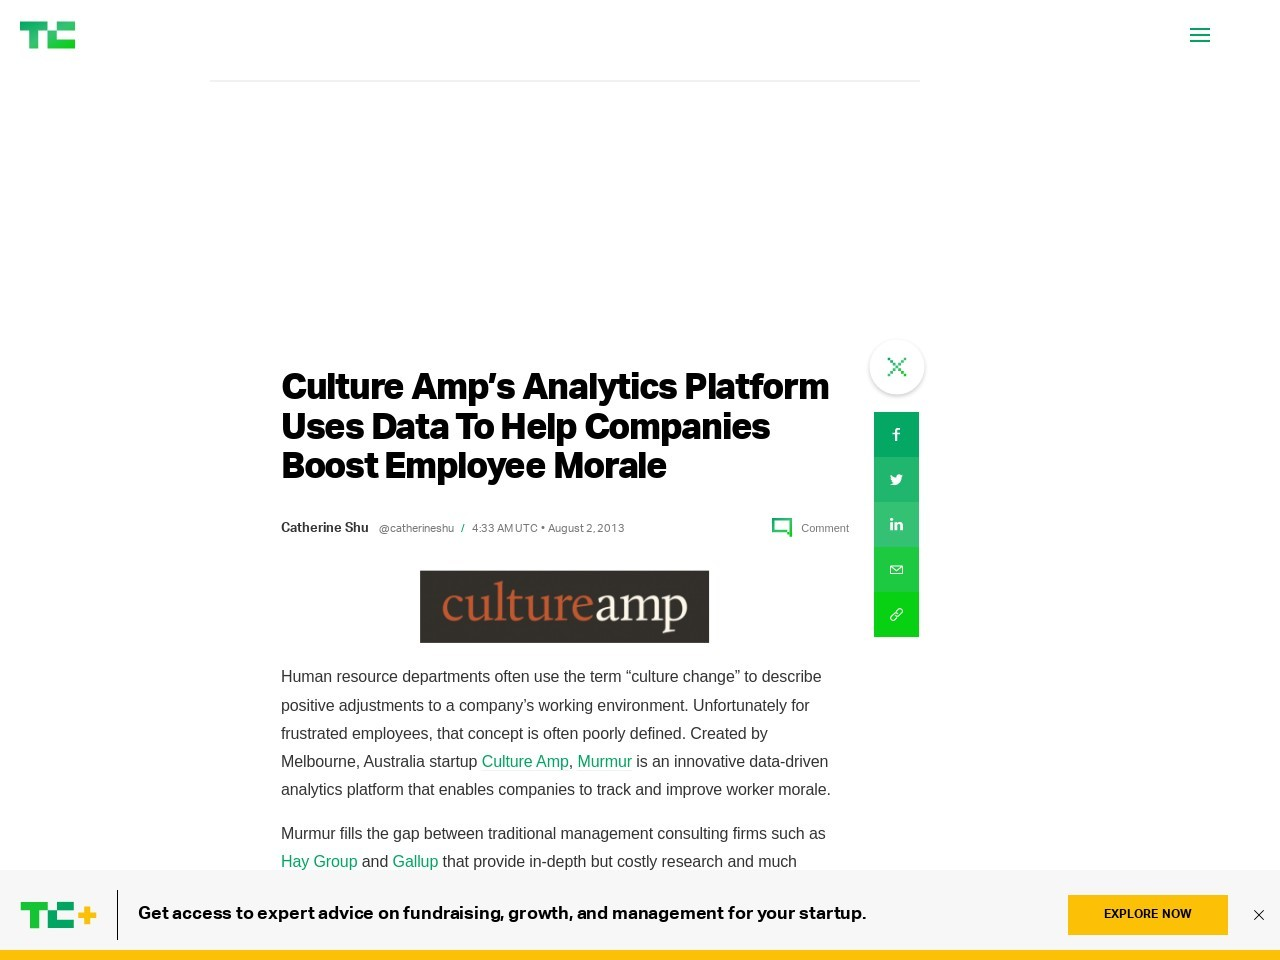 Culture Amp's Analytics Platform Uses Data To Help Companies Boost …